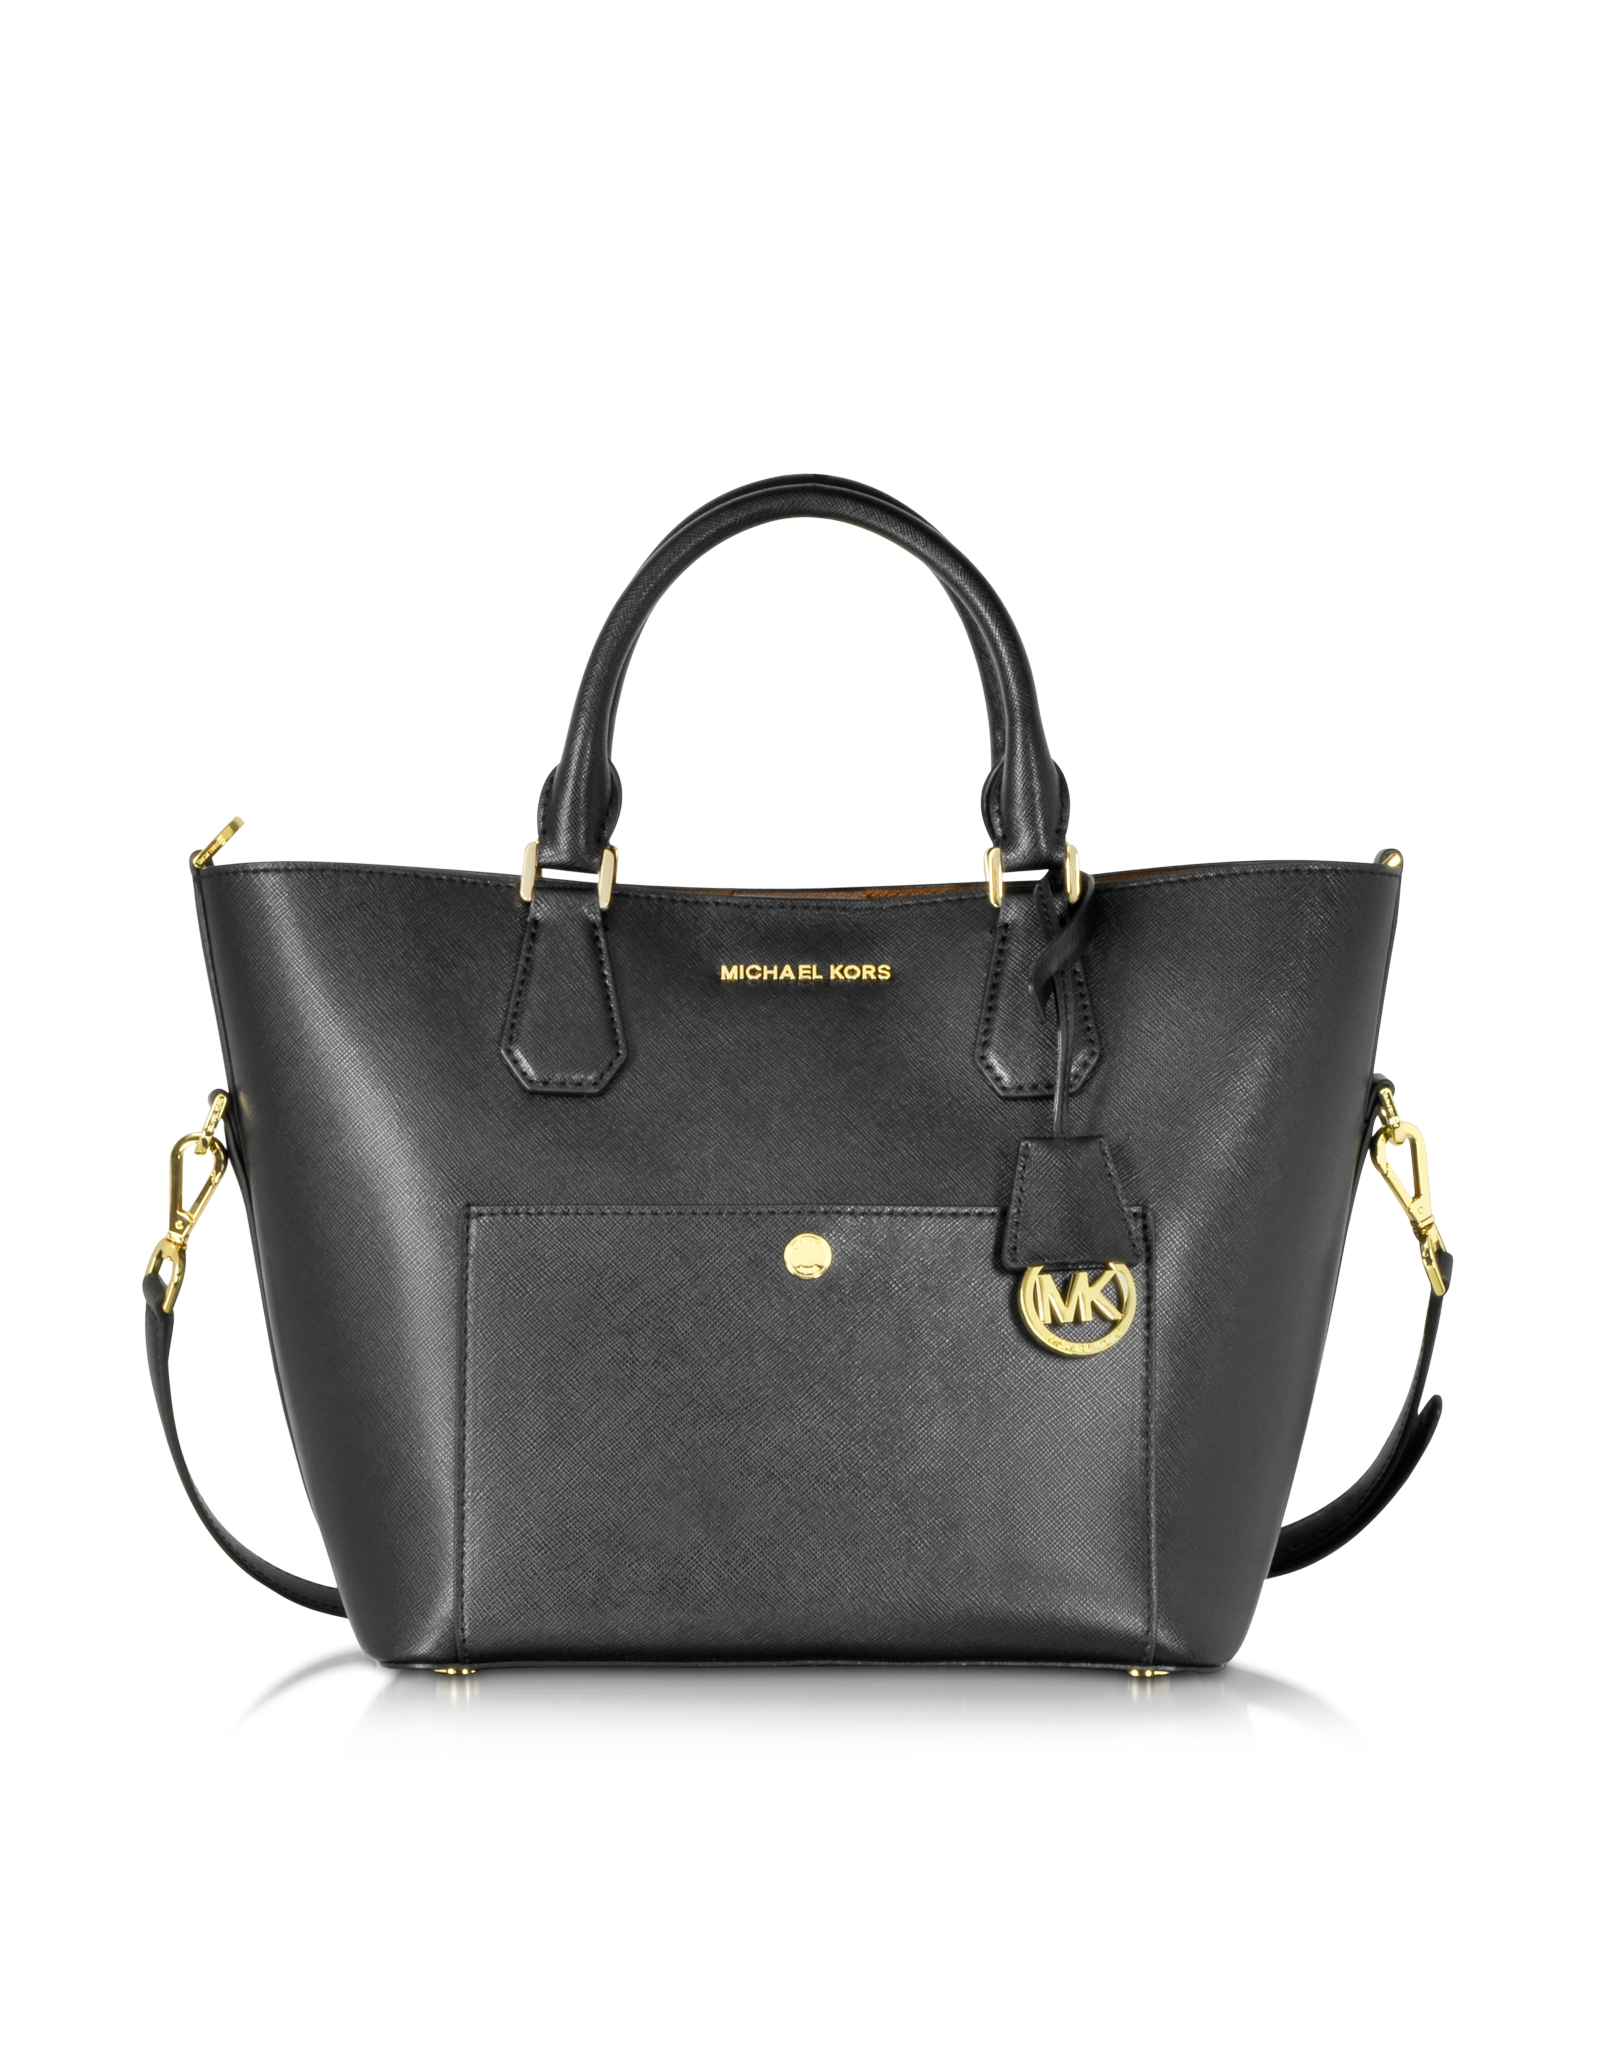 db883237ac8f Lyst - Michael Kors Greenwich Large Saffiano Leather Satchel in Black